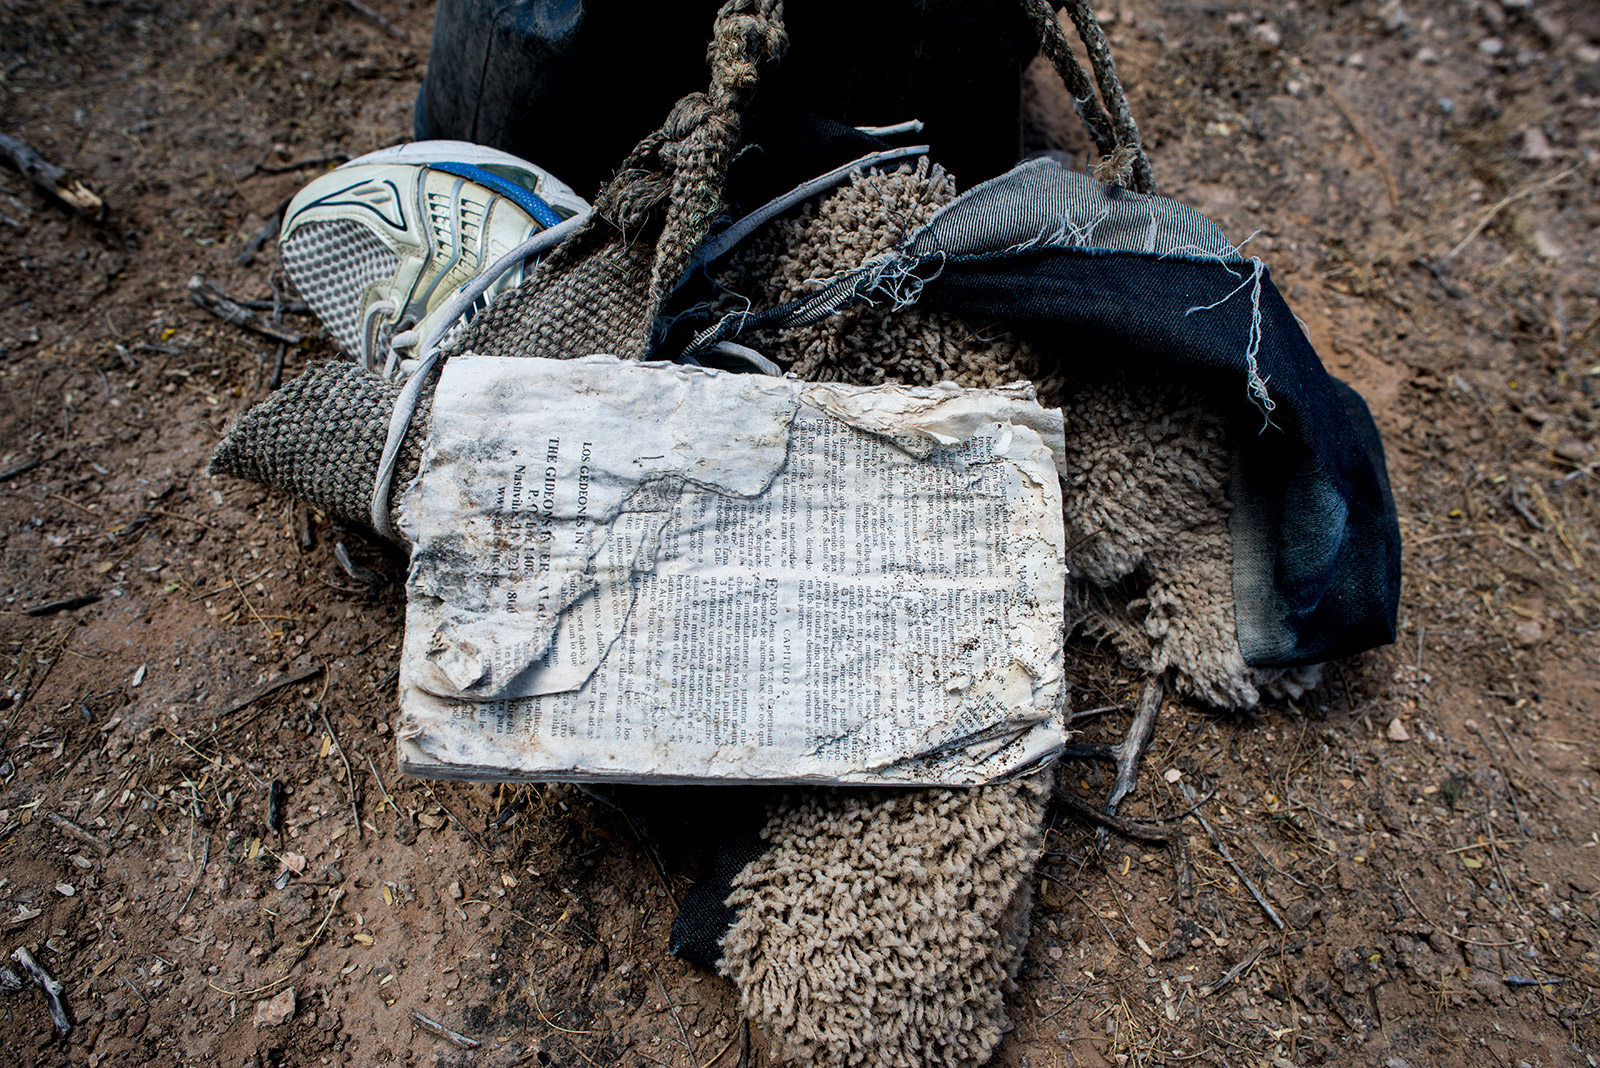 While searching for missing migrants in the Arizona desert on Aug. 26, 2017, volunteers from Aguilas Del Desierto collect discarded items including this Bible, shoes and carpet-like shoe covers that hide footprints. <em>(Brandon Quester/inewsource)</em>